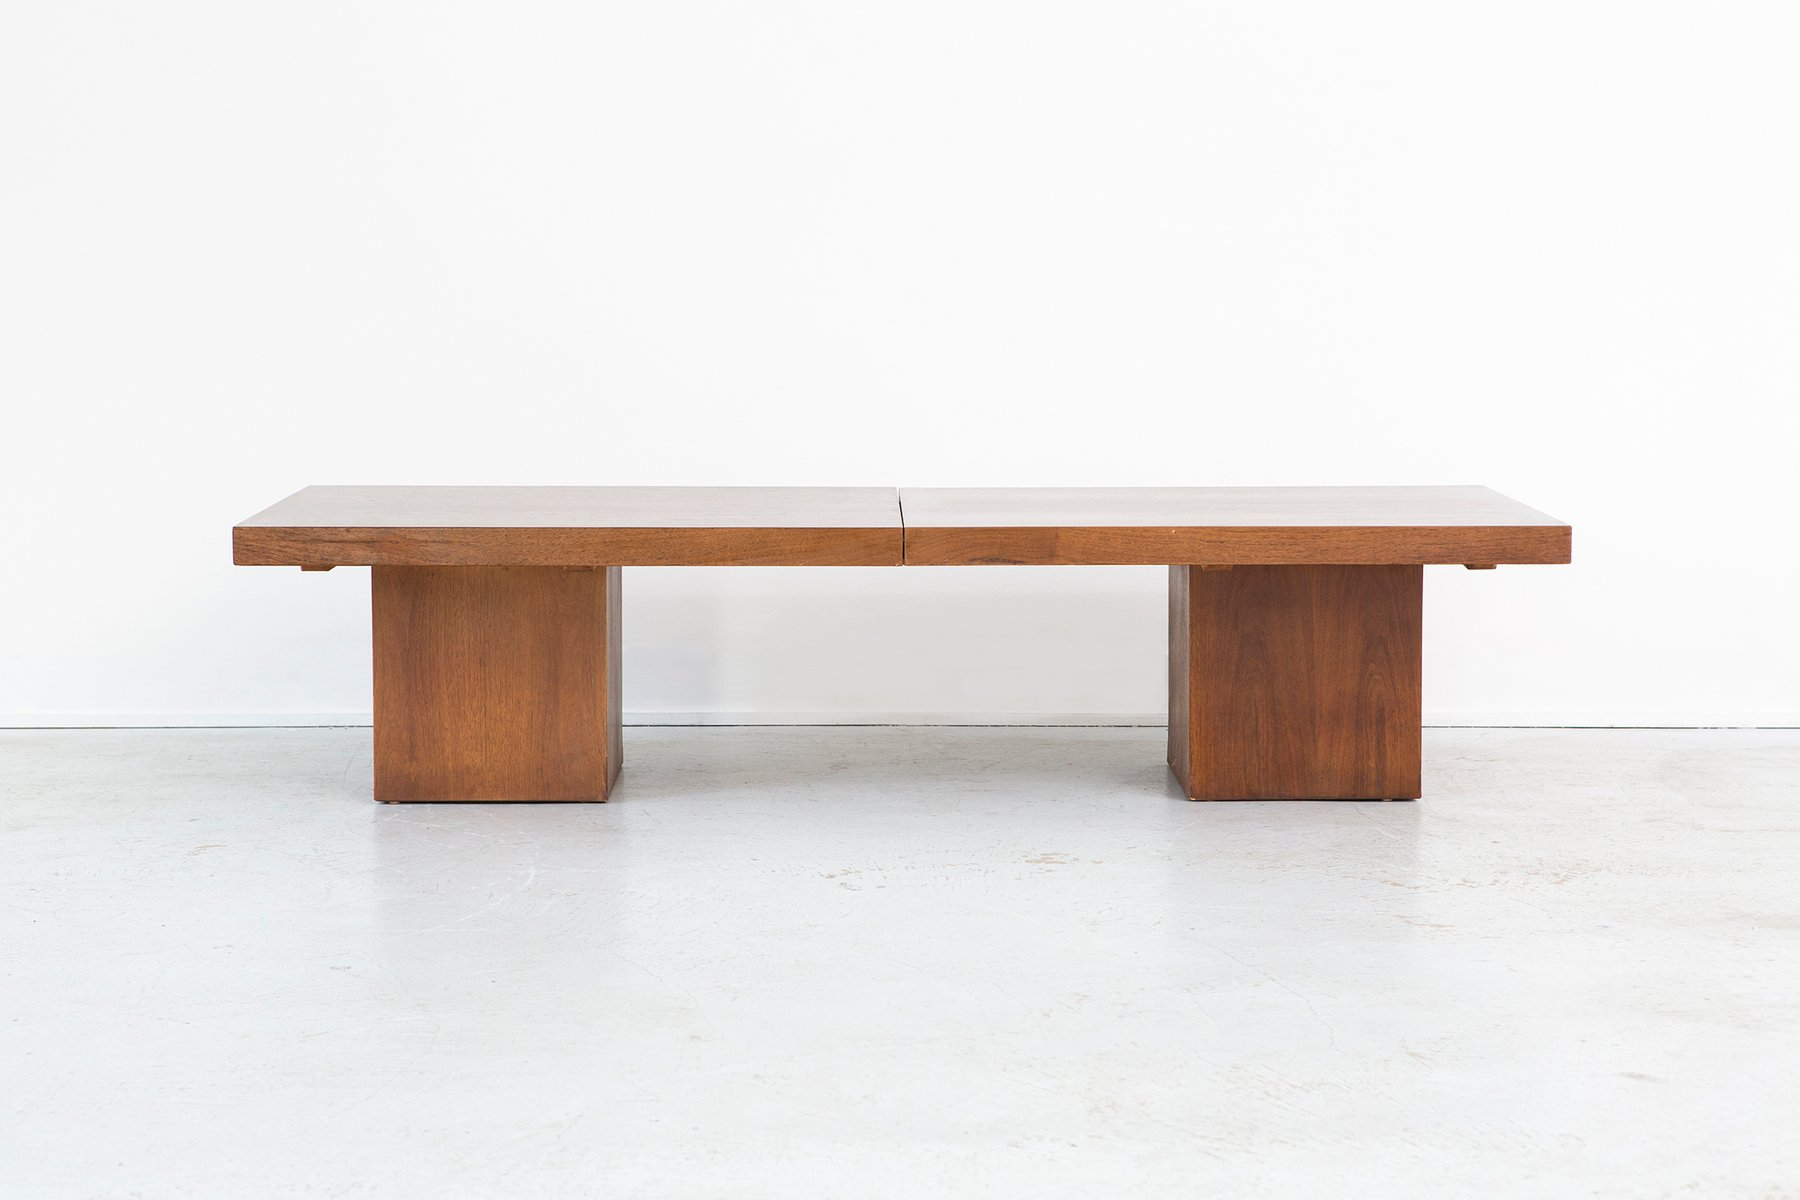 Extending Coffee Table By John Keal For Brown Saltman, 1960s